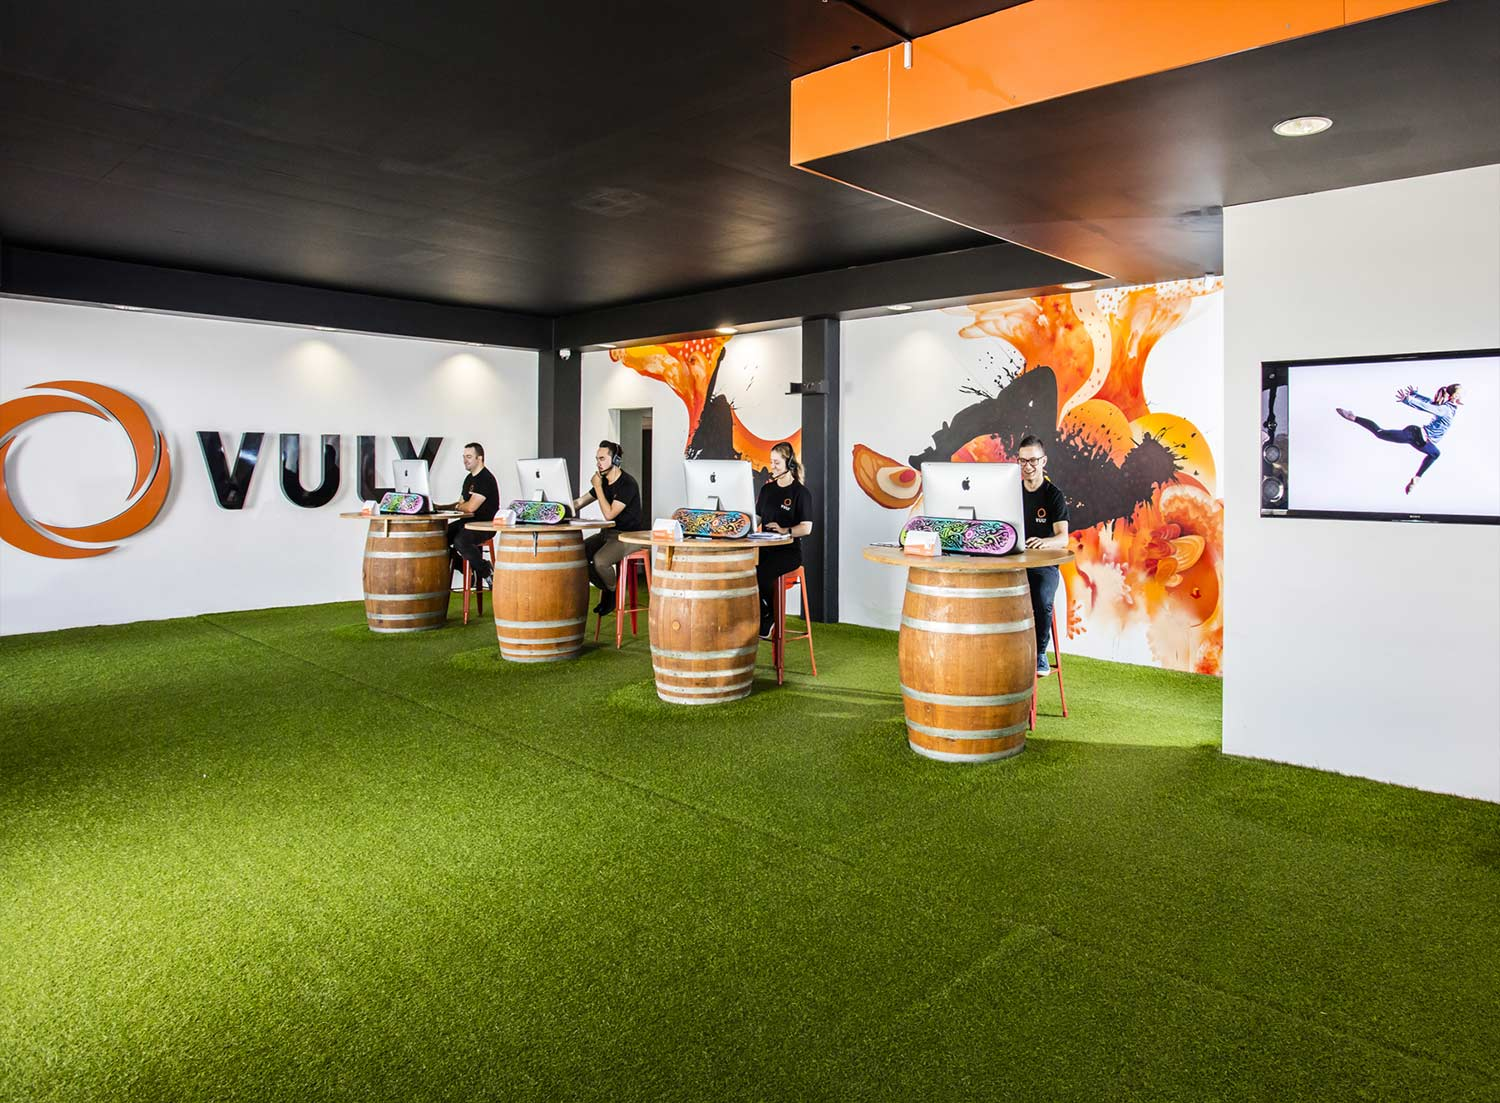 The Vuly trampoline showroom at Wakerly, Brisbane.